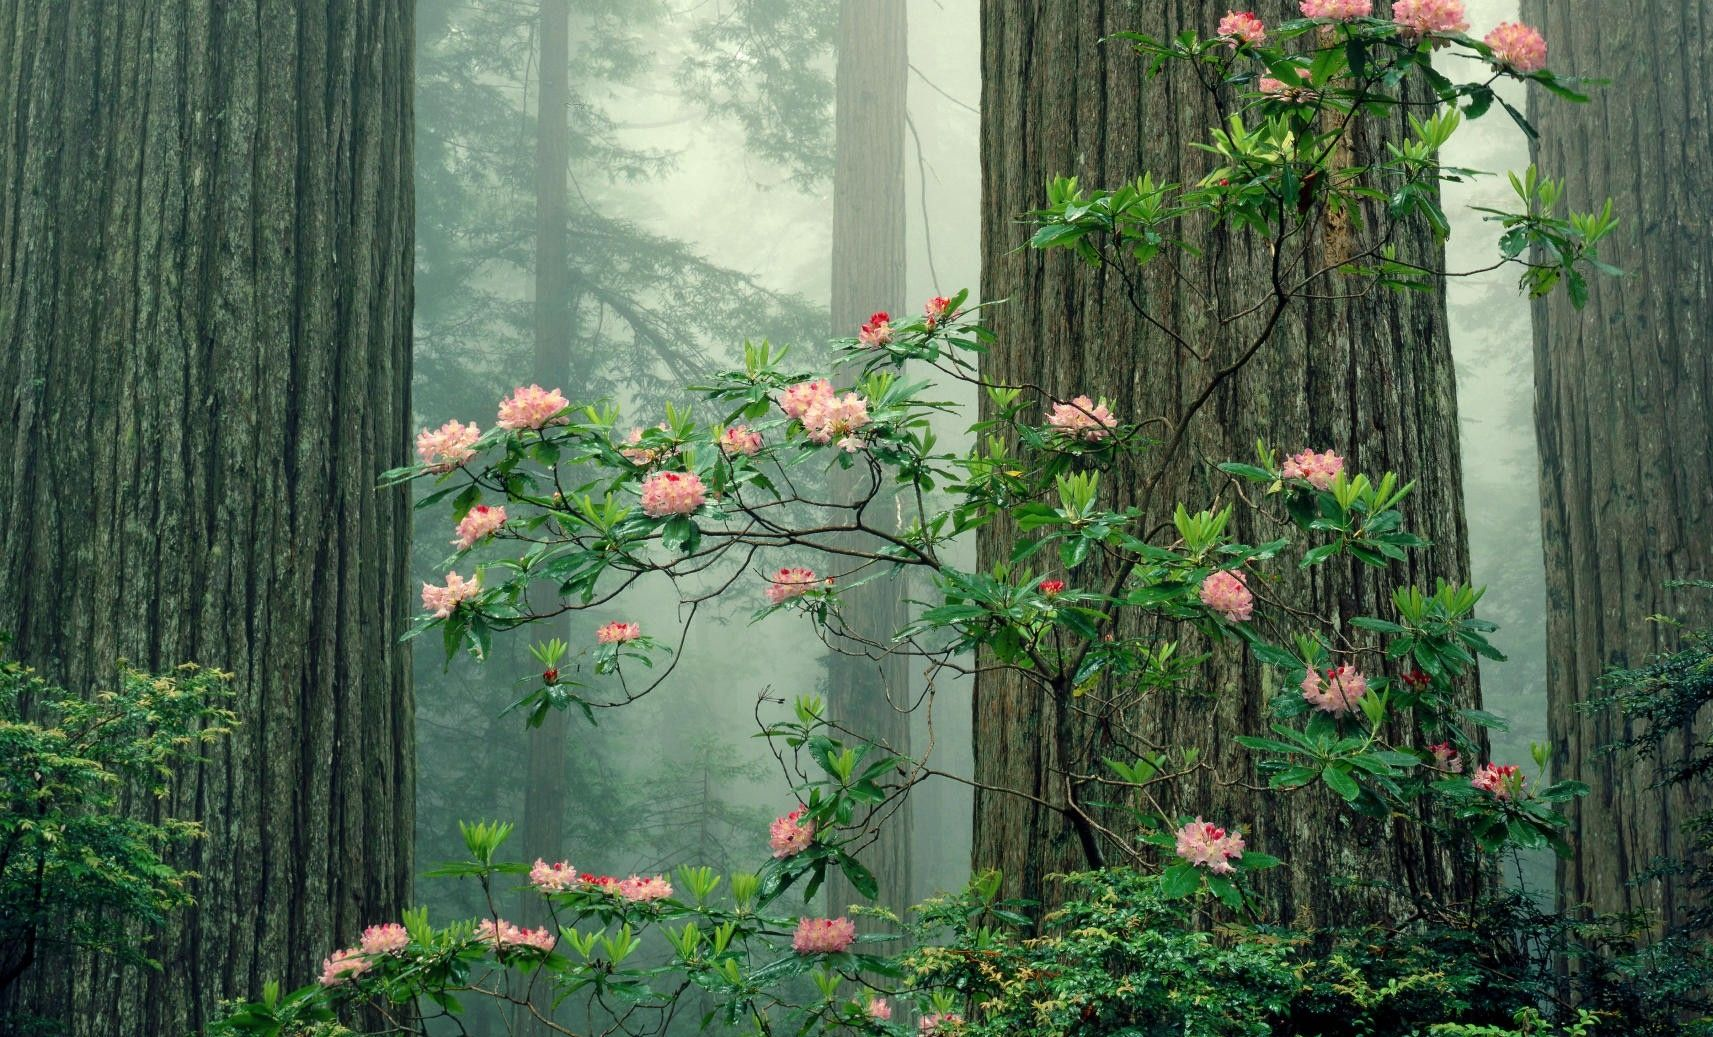 Rhododendrons In Bloom Redwood National Park California Flower Landscape Forest Flowers Nature